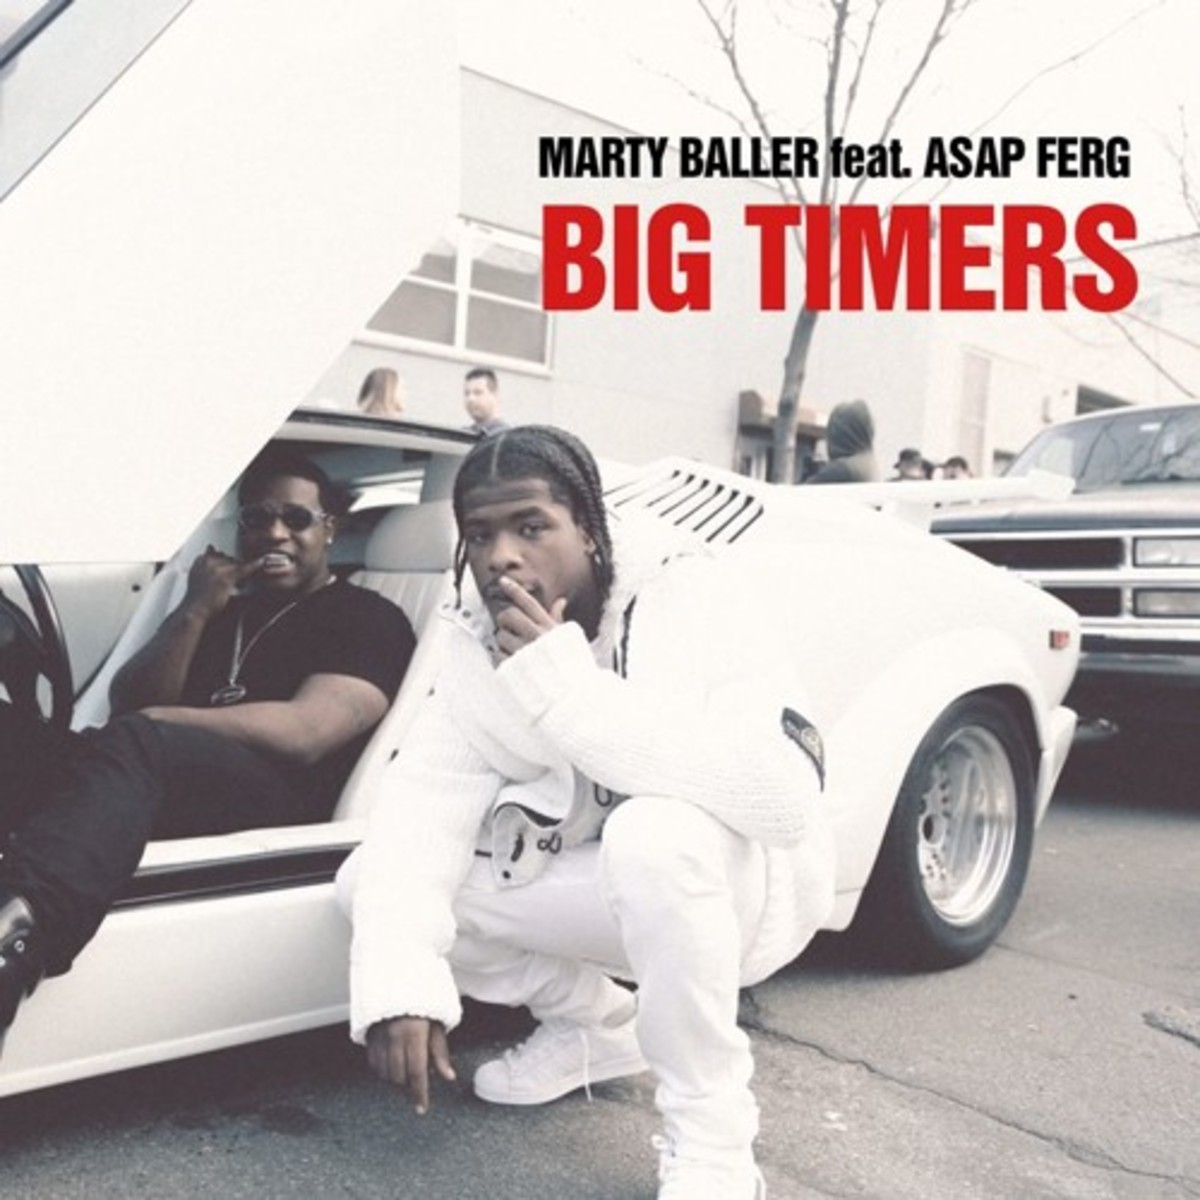 marty-baller-big-timers.jpg